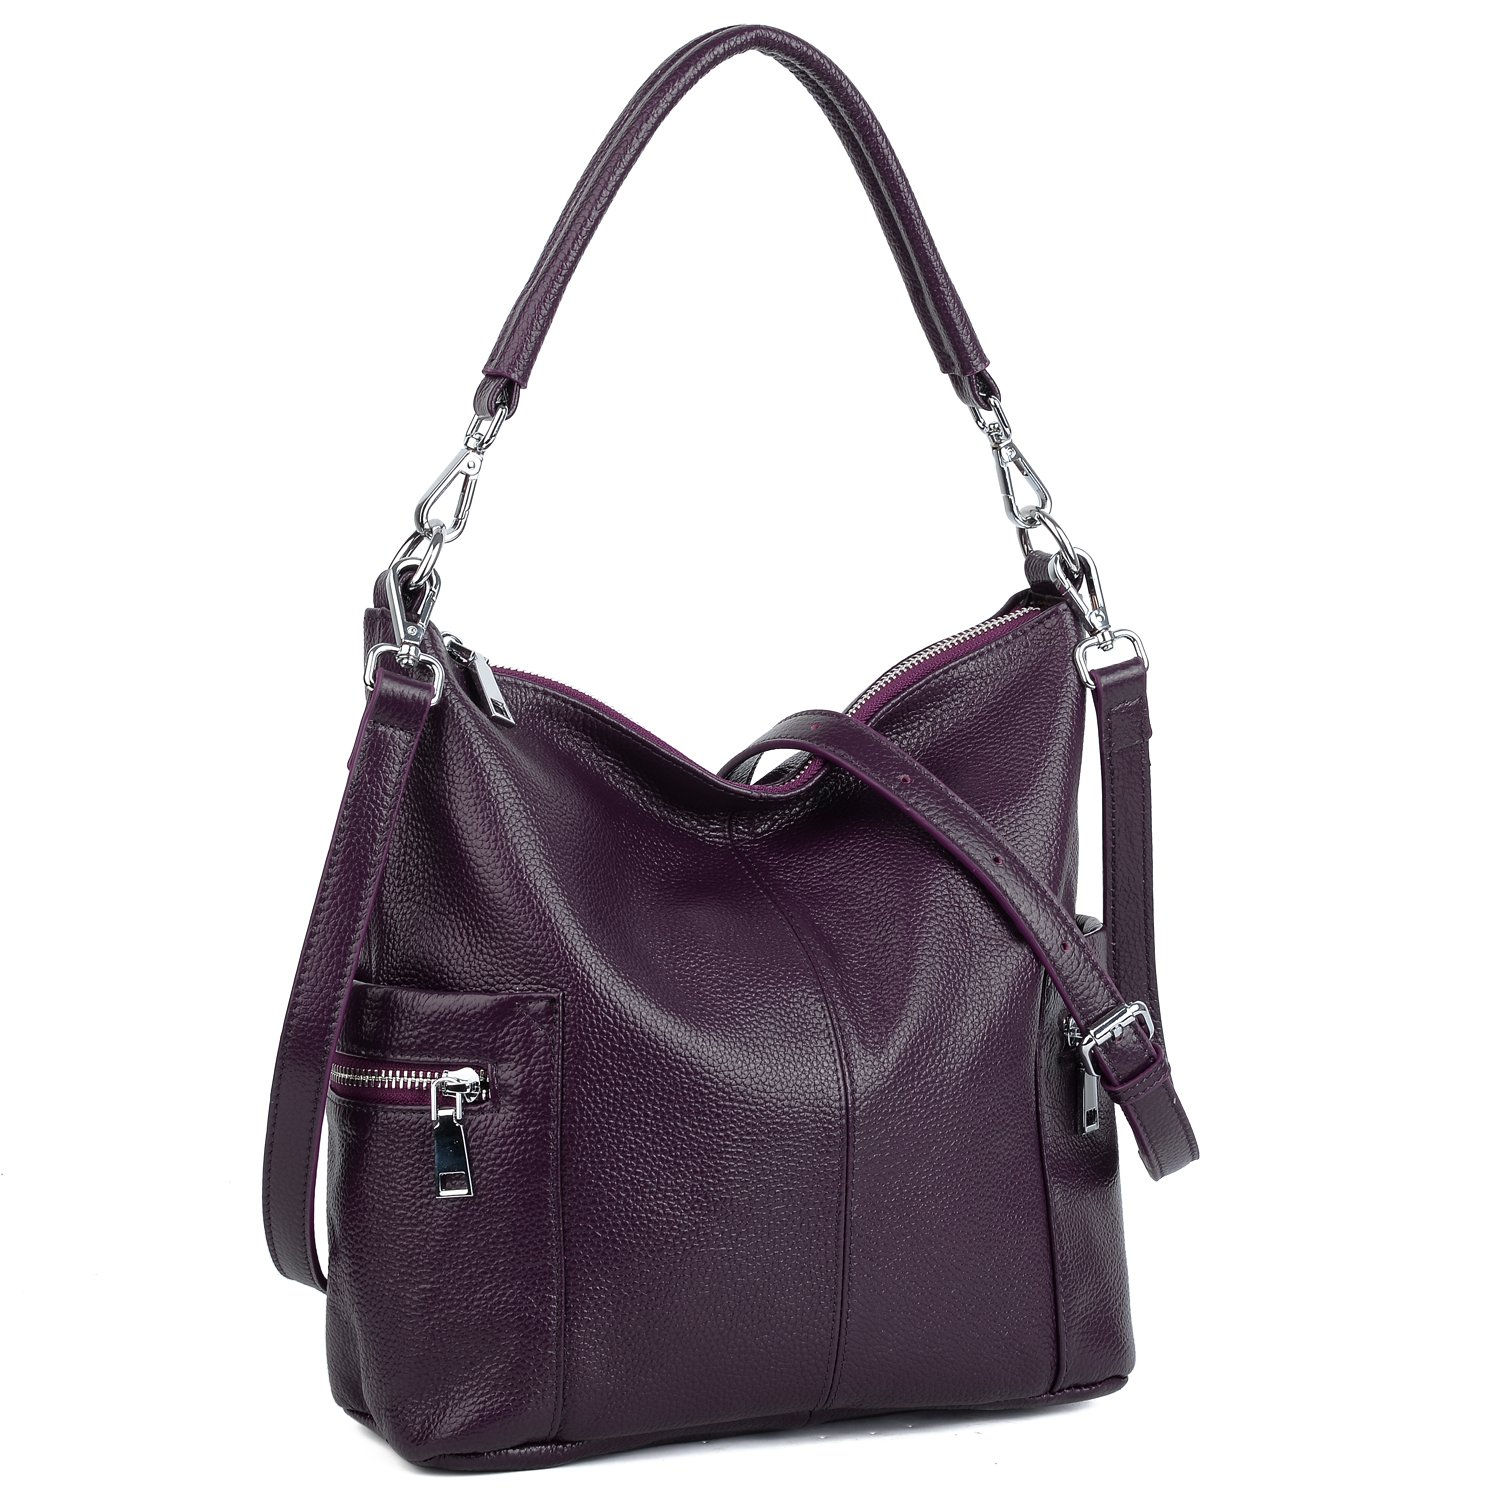 YALUXE Women's Multi Pocket Soft Cowhide Leather Medium Purse Hobo Style Shoulder Bag Purple